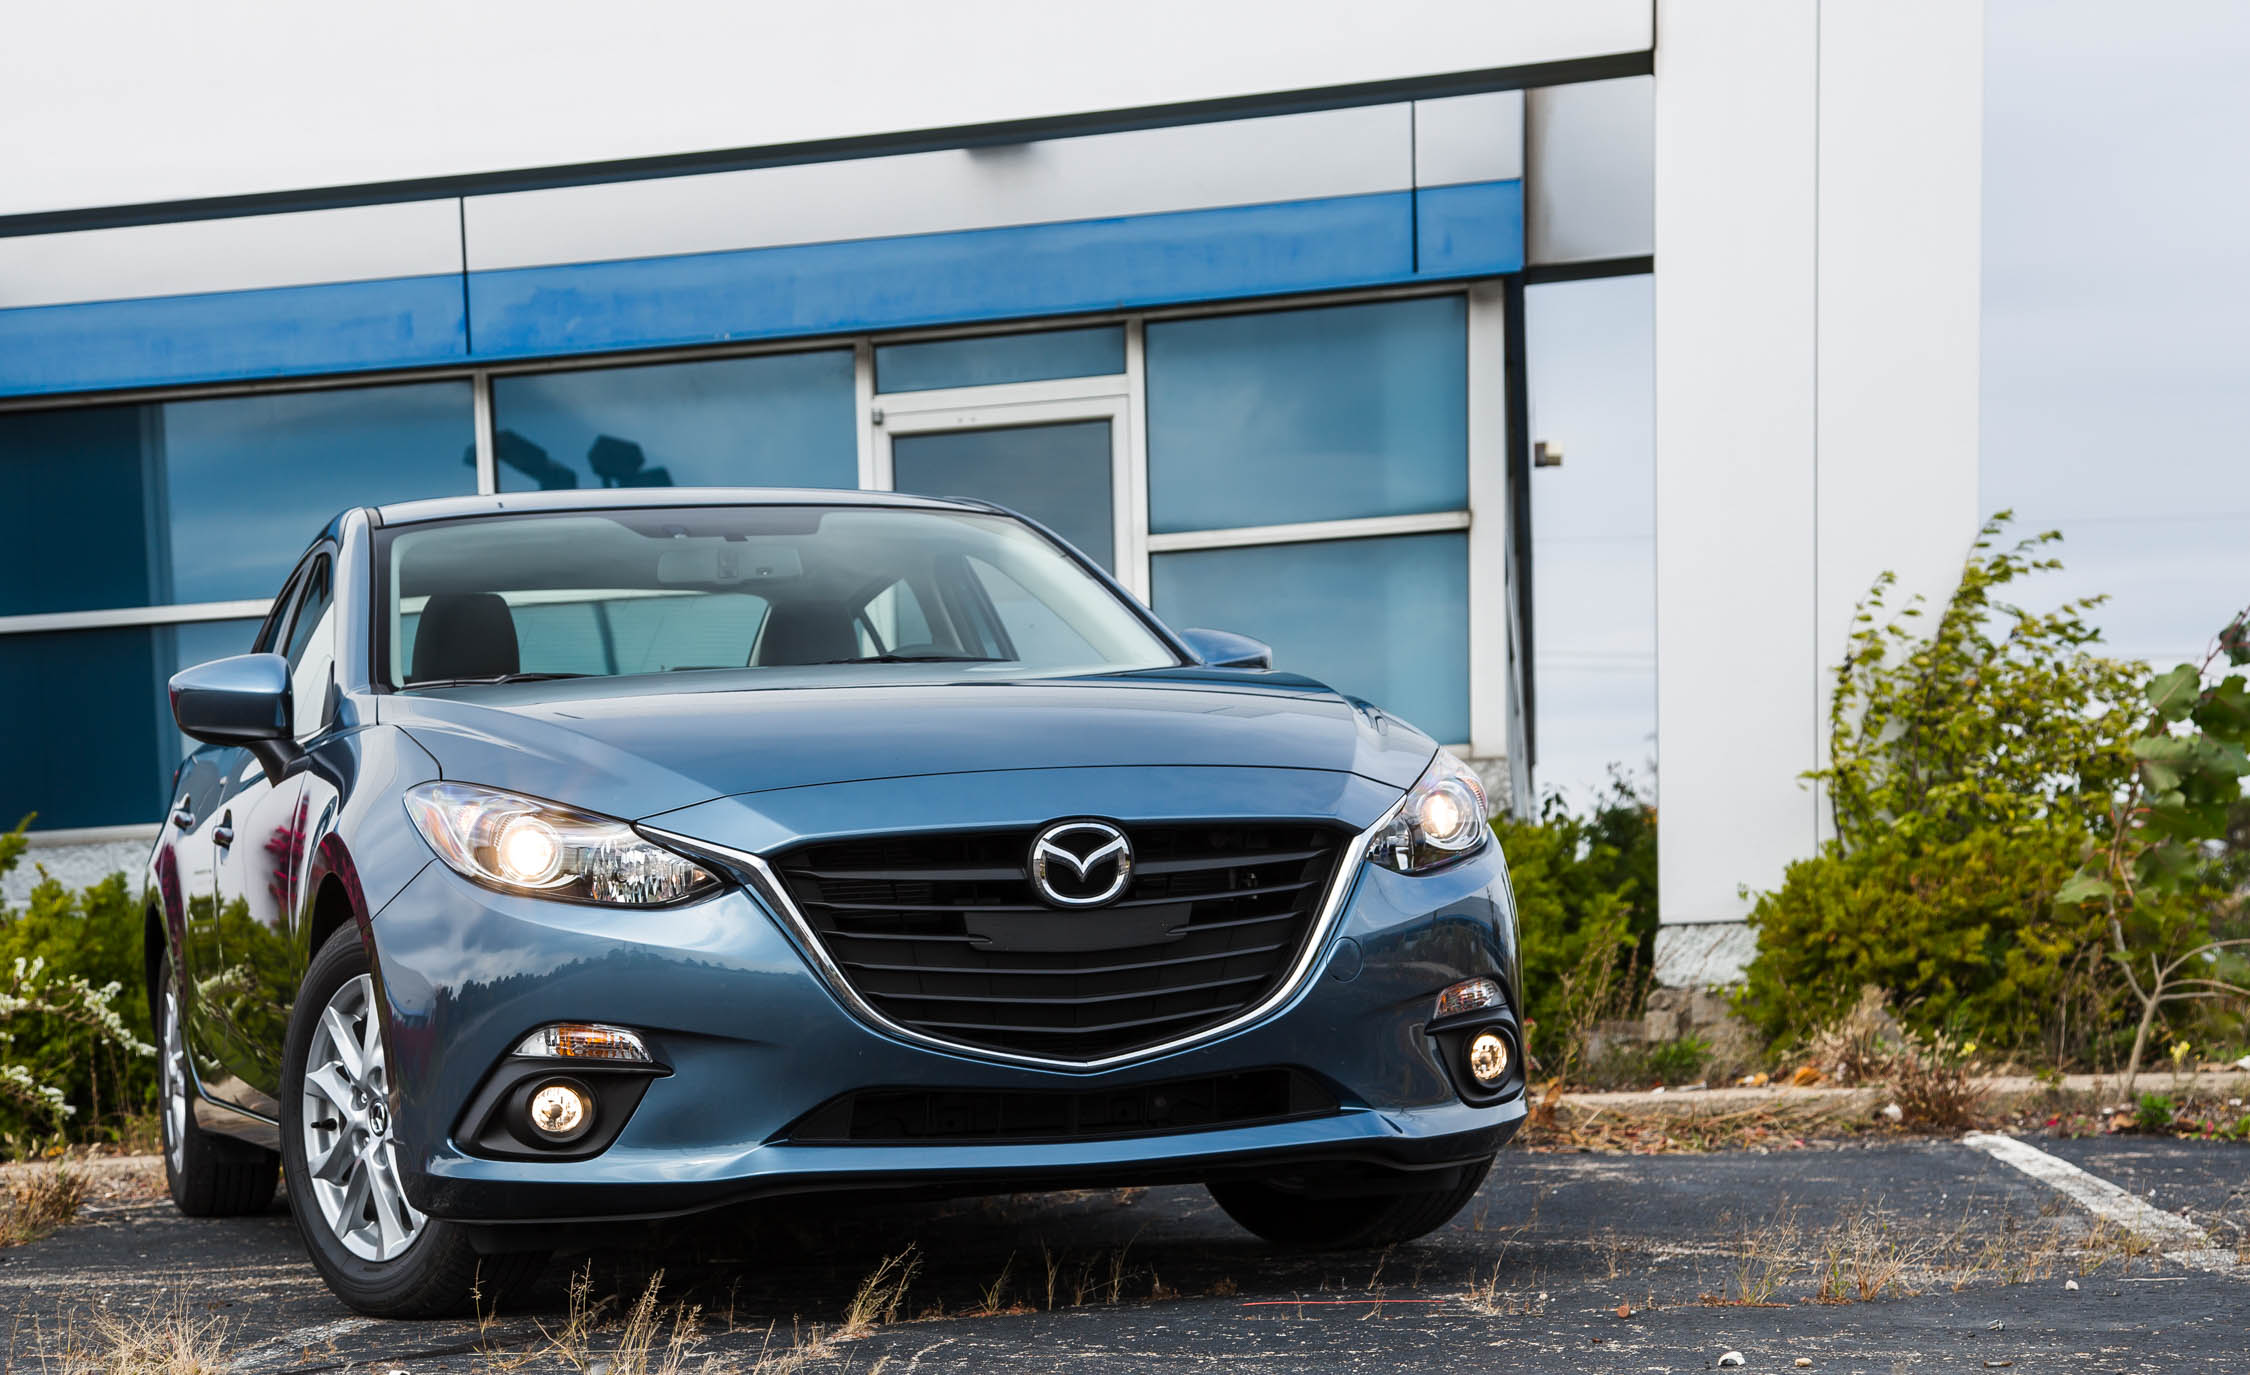 2016 Mazda 3 (View 7 of 22)